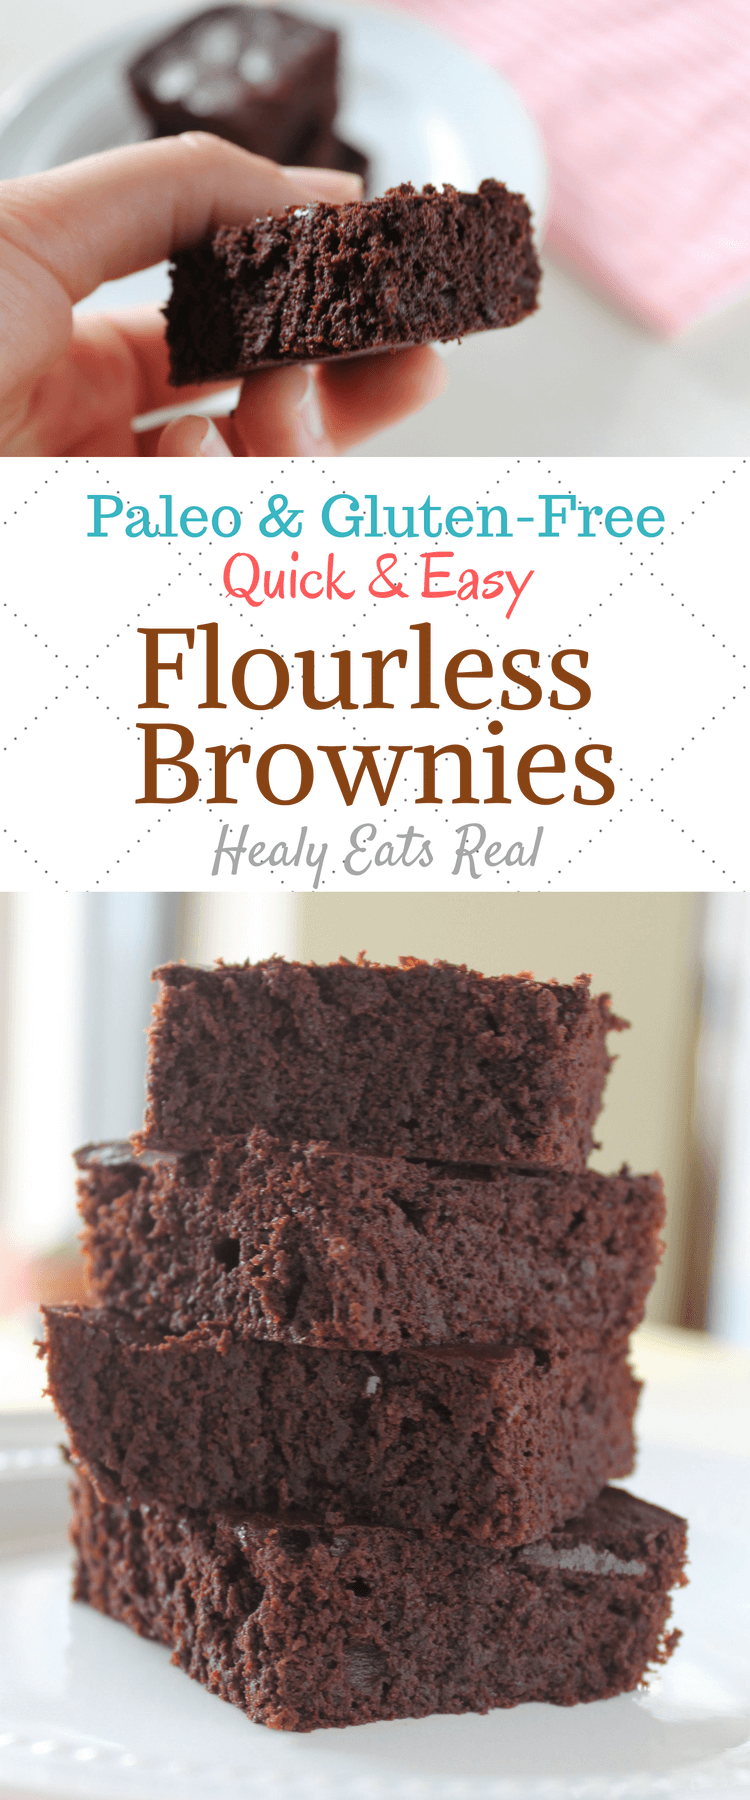 Healthy Flourless Brownies Flourless Brownies (Paleo, Gluten Free, Dairy Free) These healthy delicious chocolate brownies can be made in under 30 minutes! So easy!Flourless Brownies (Paleo, Gluten Free, Dairy Free) These healthy delicious chocolate brownies can be made in under 30 minutes! So easy!